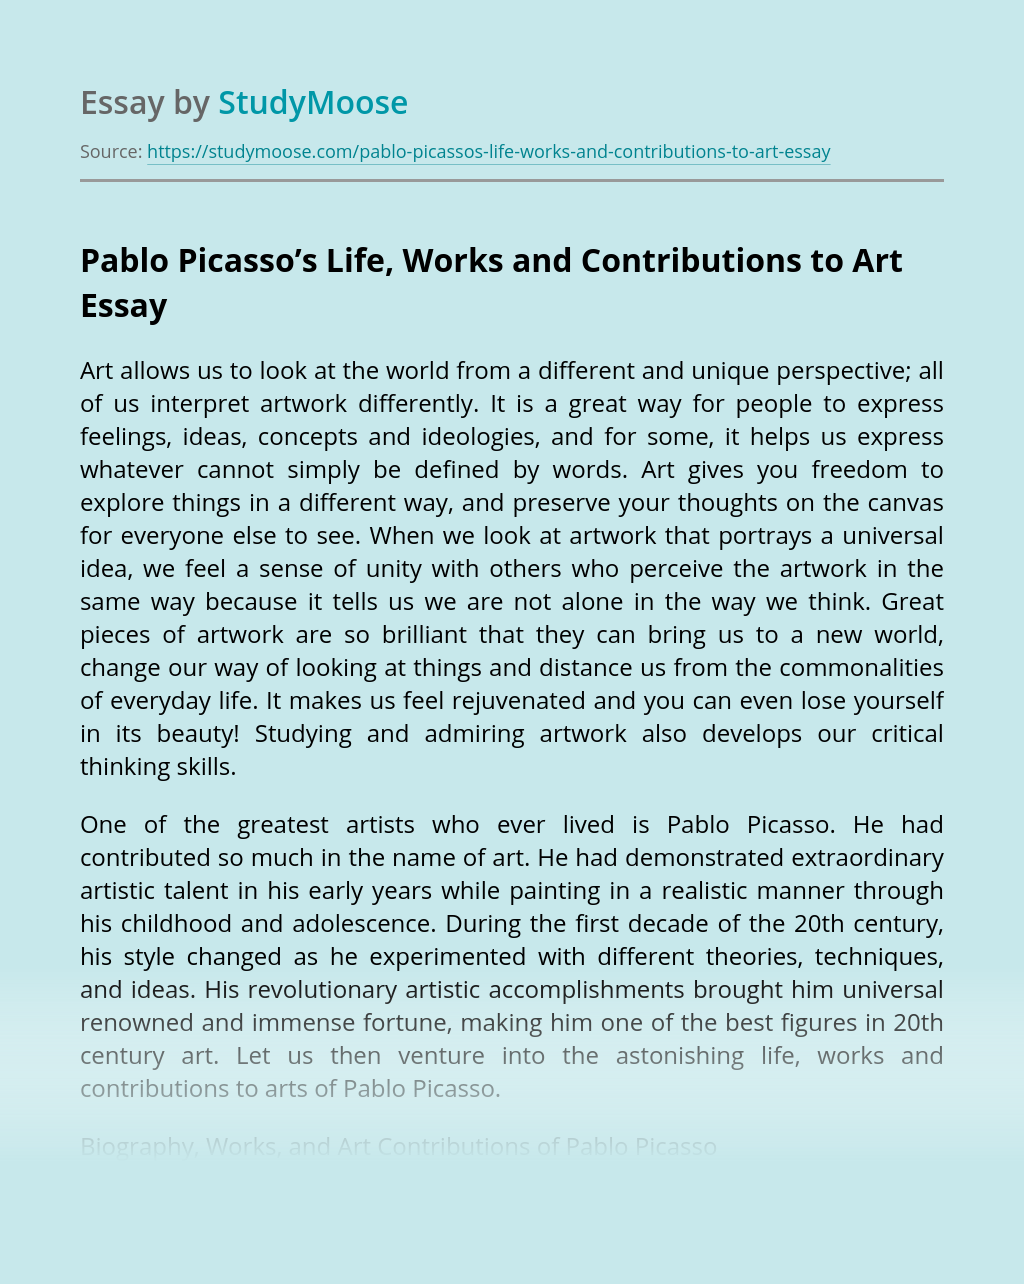 Pablo Picasso's Life, Works and Contributions to Art